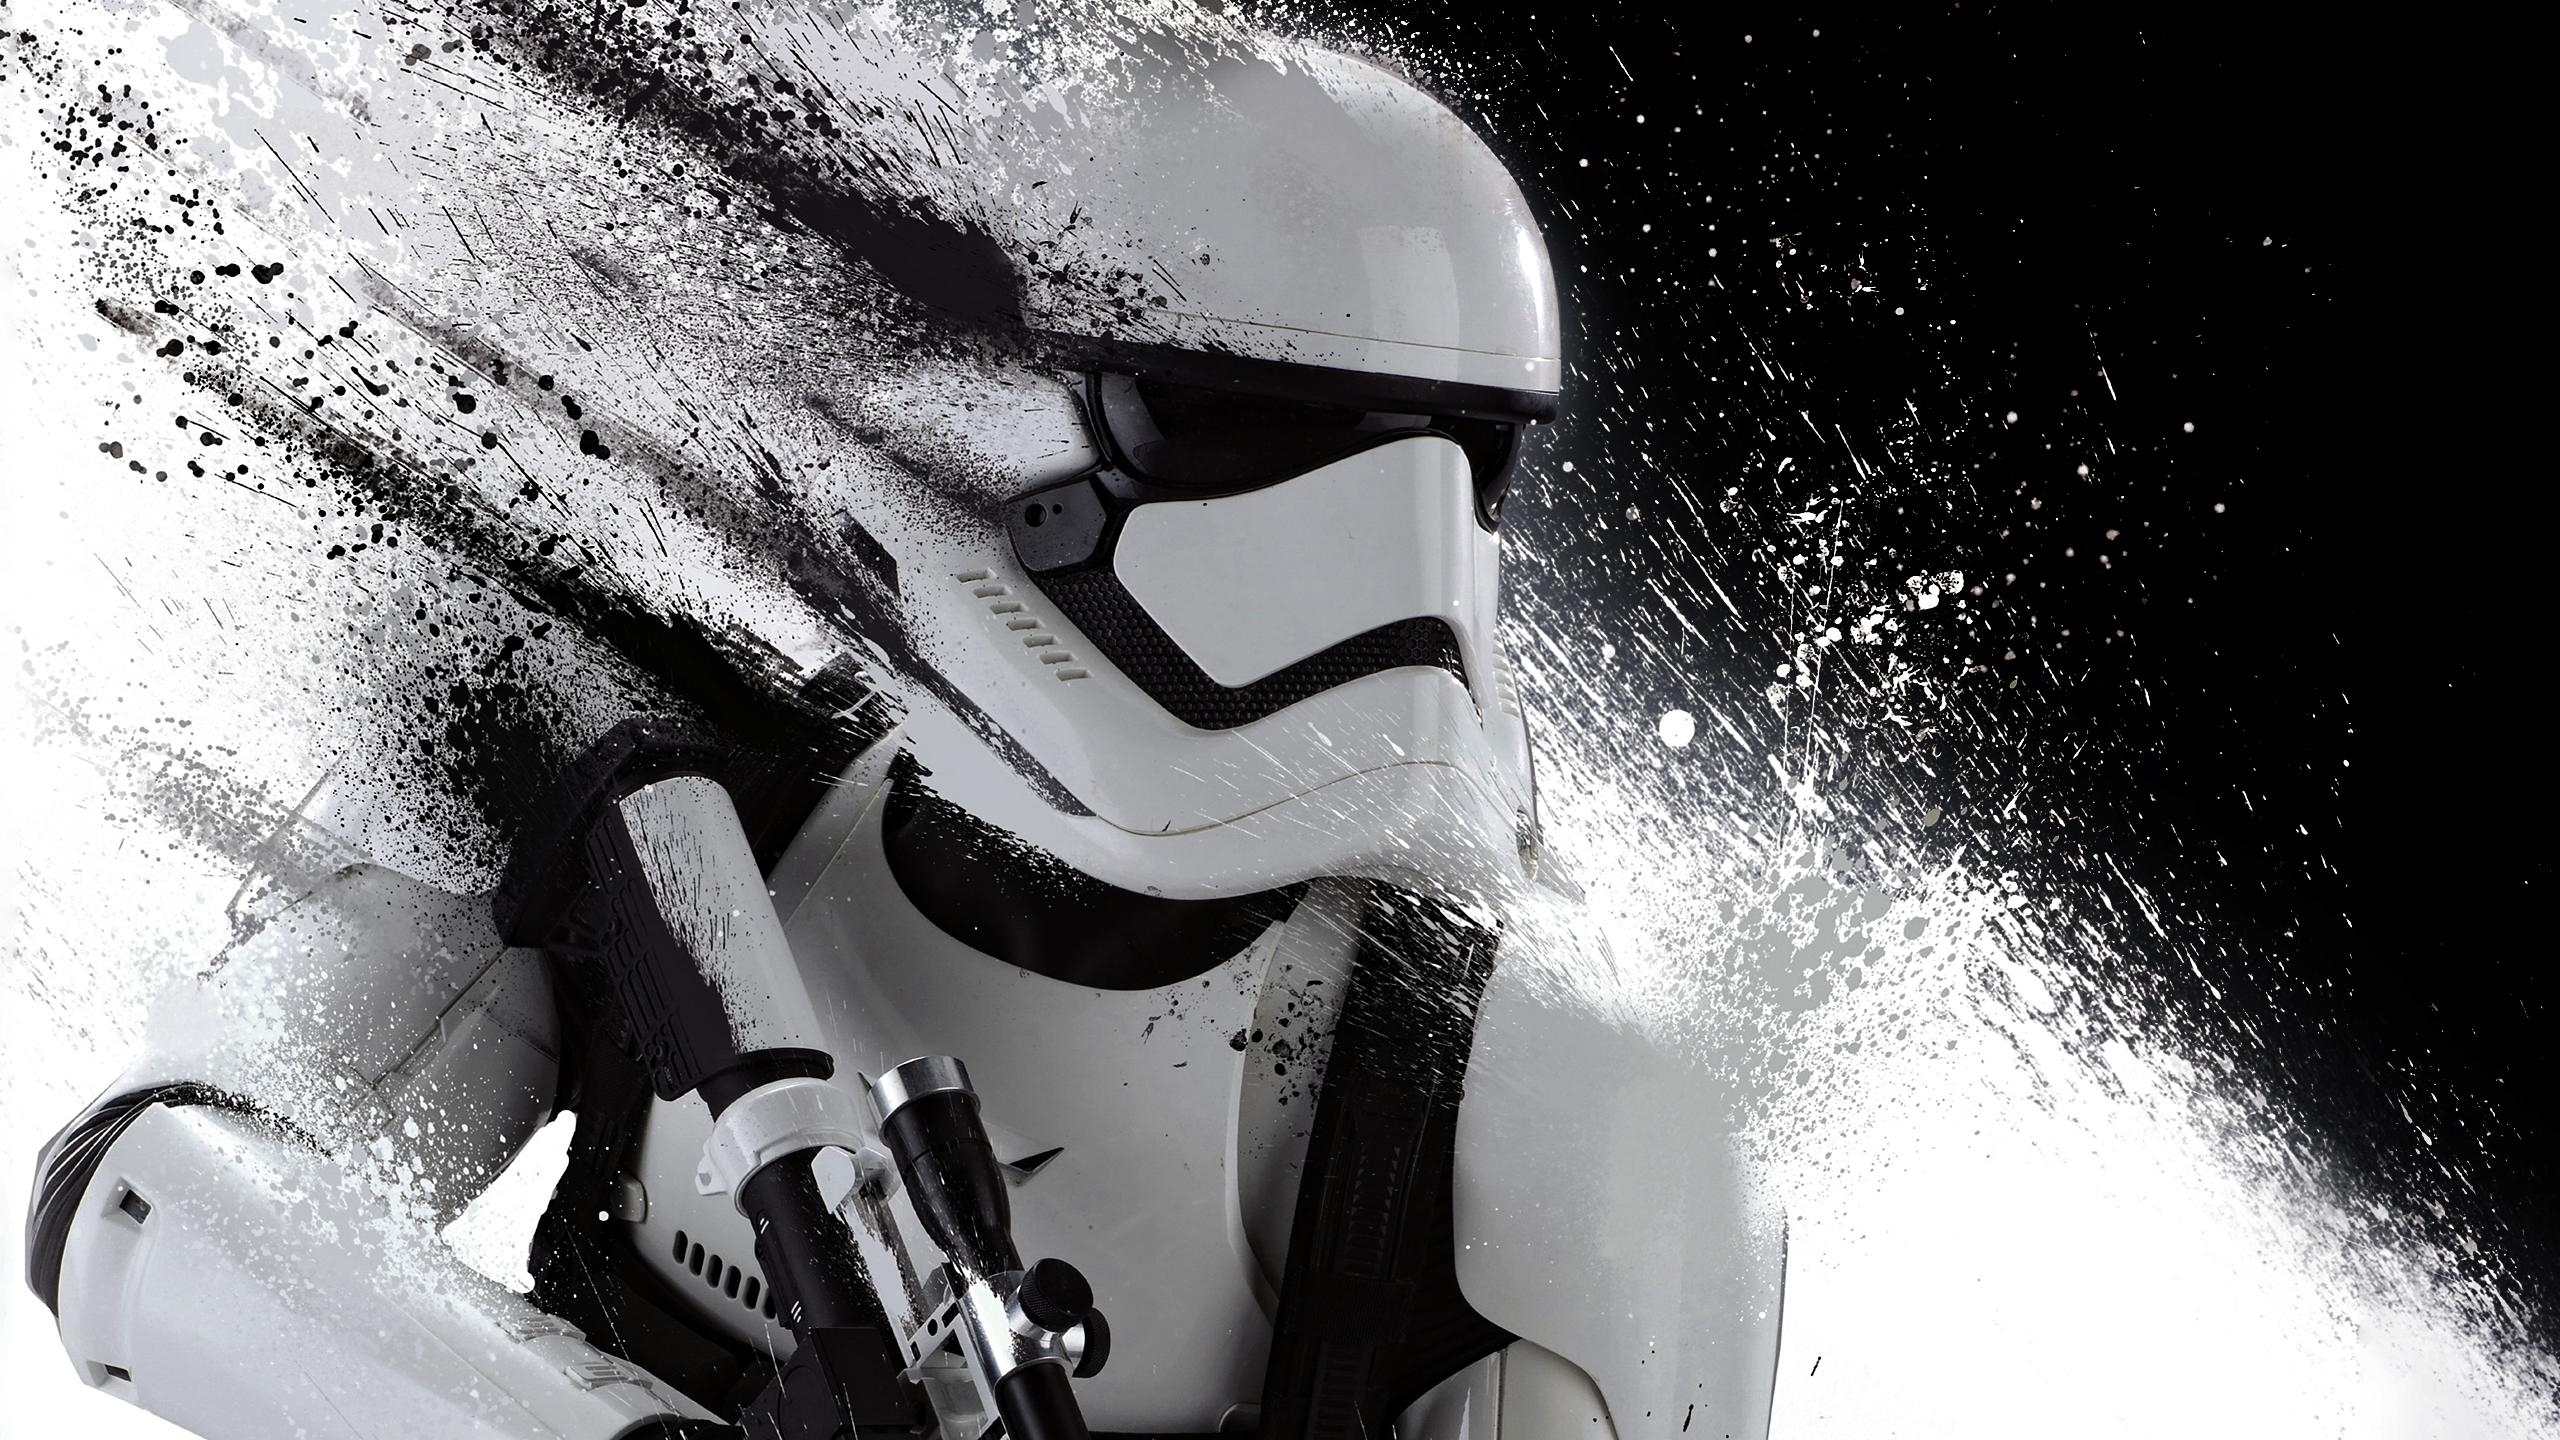 270 stormtrooper hd wallpapers | background images - wallpaper abyss